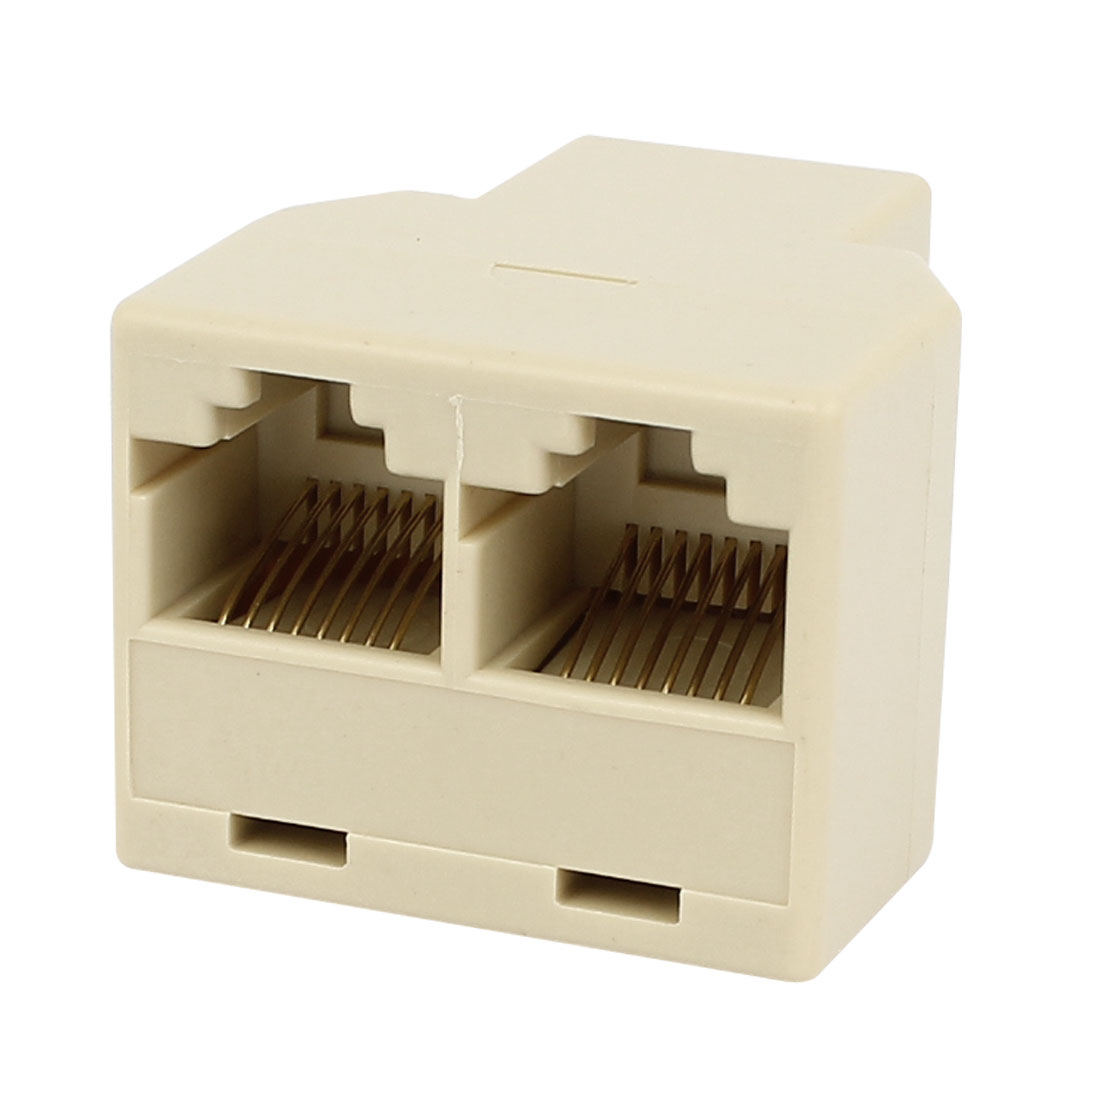 RJ45 8P8C 3 Ports Female to Female Network ADSL Splitter Adapter Connector - image 2 de 2